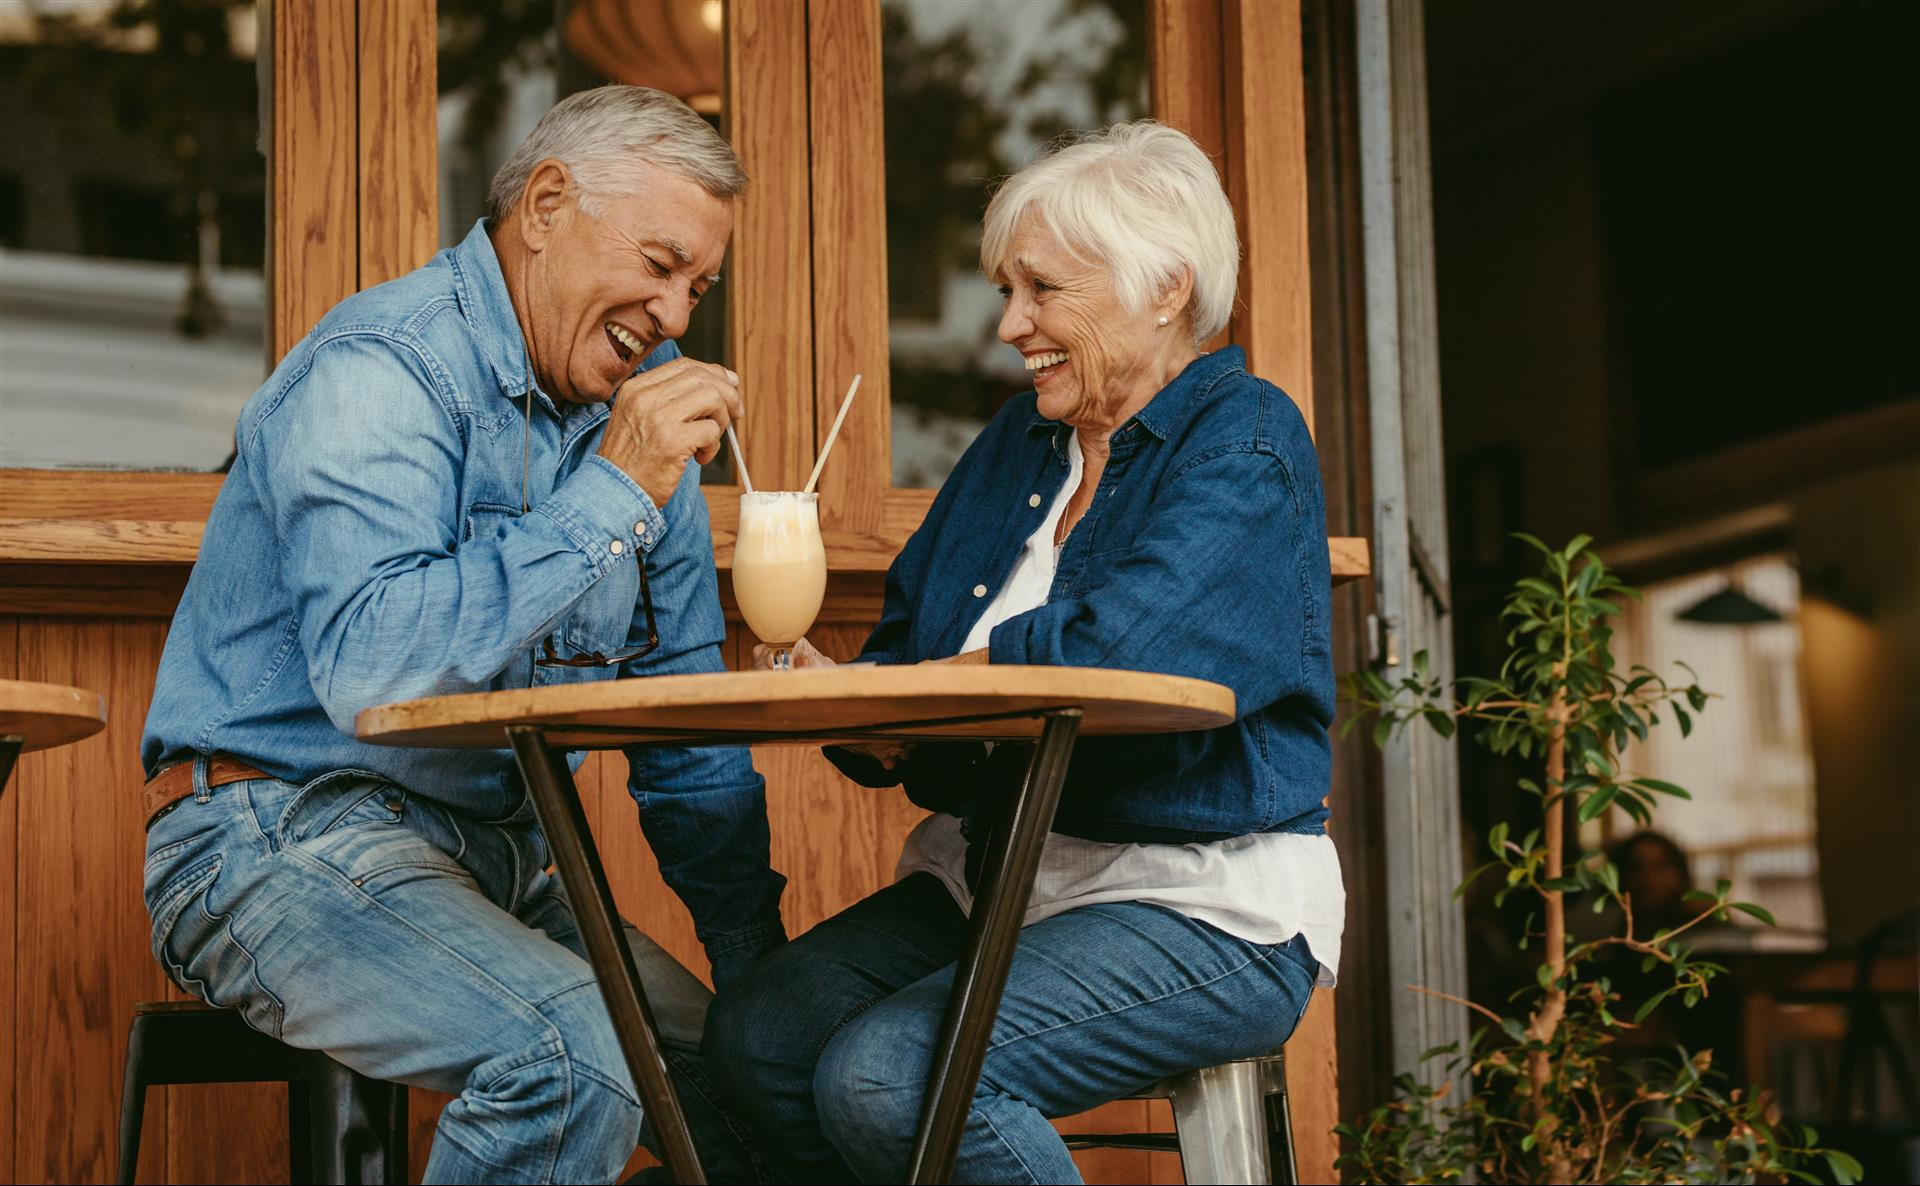 Dating as a Senior: Tips for Safety and Fun